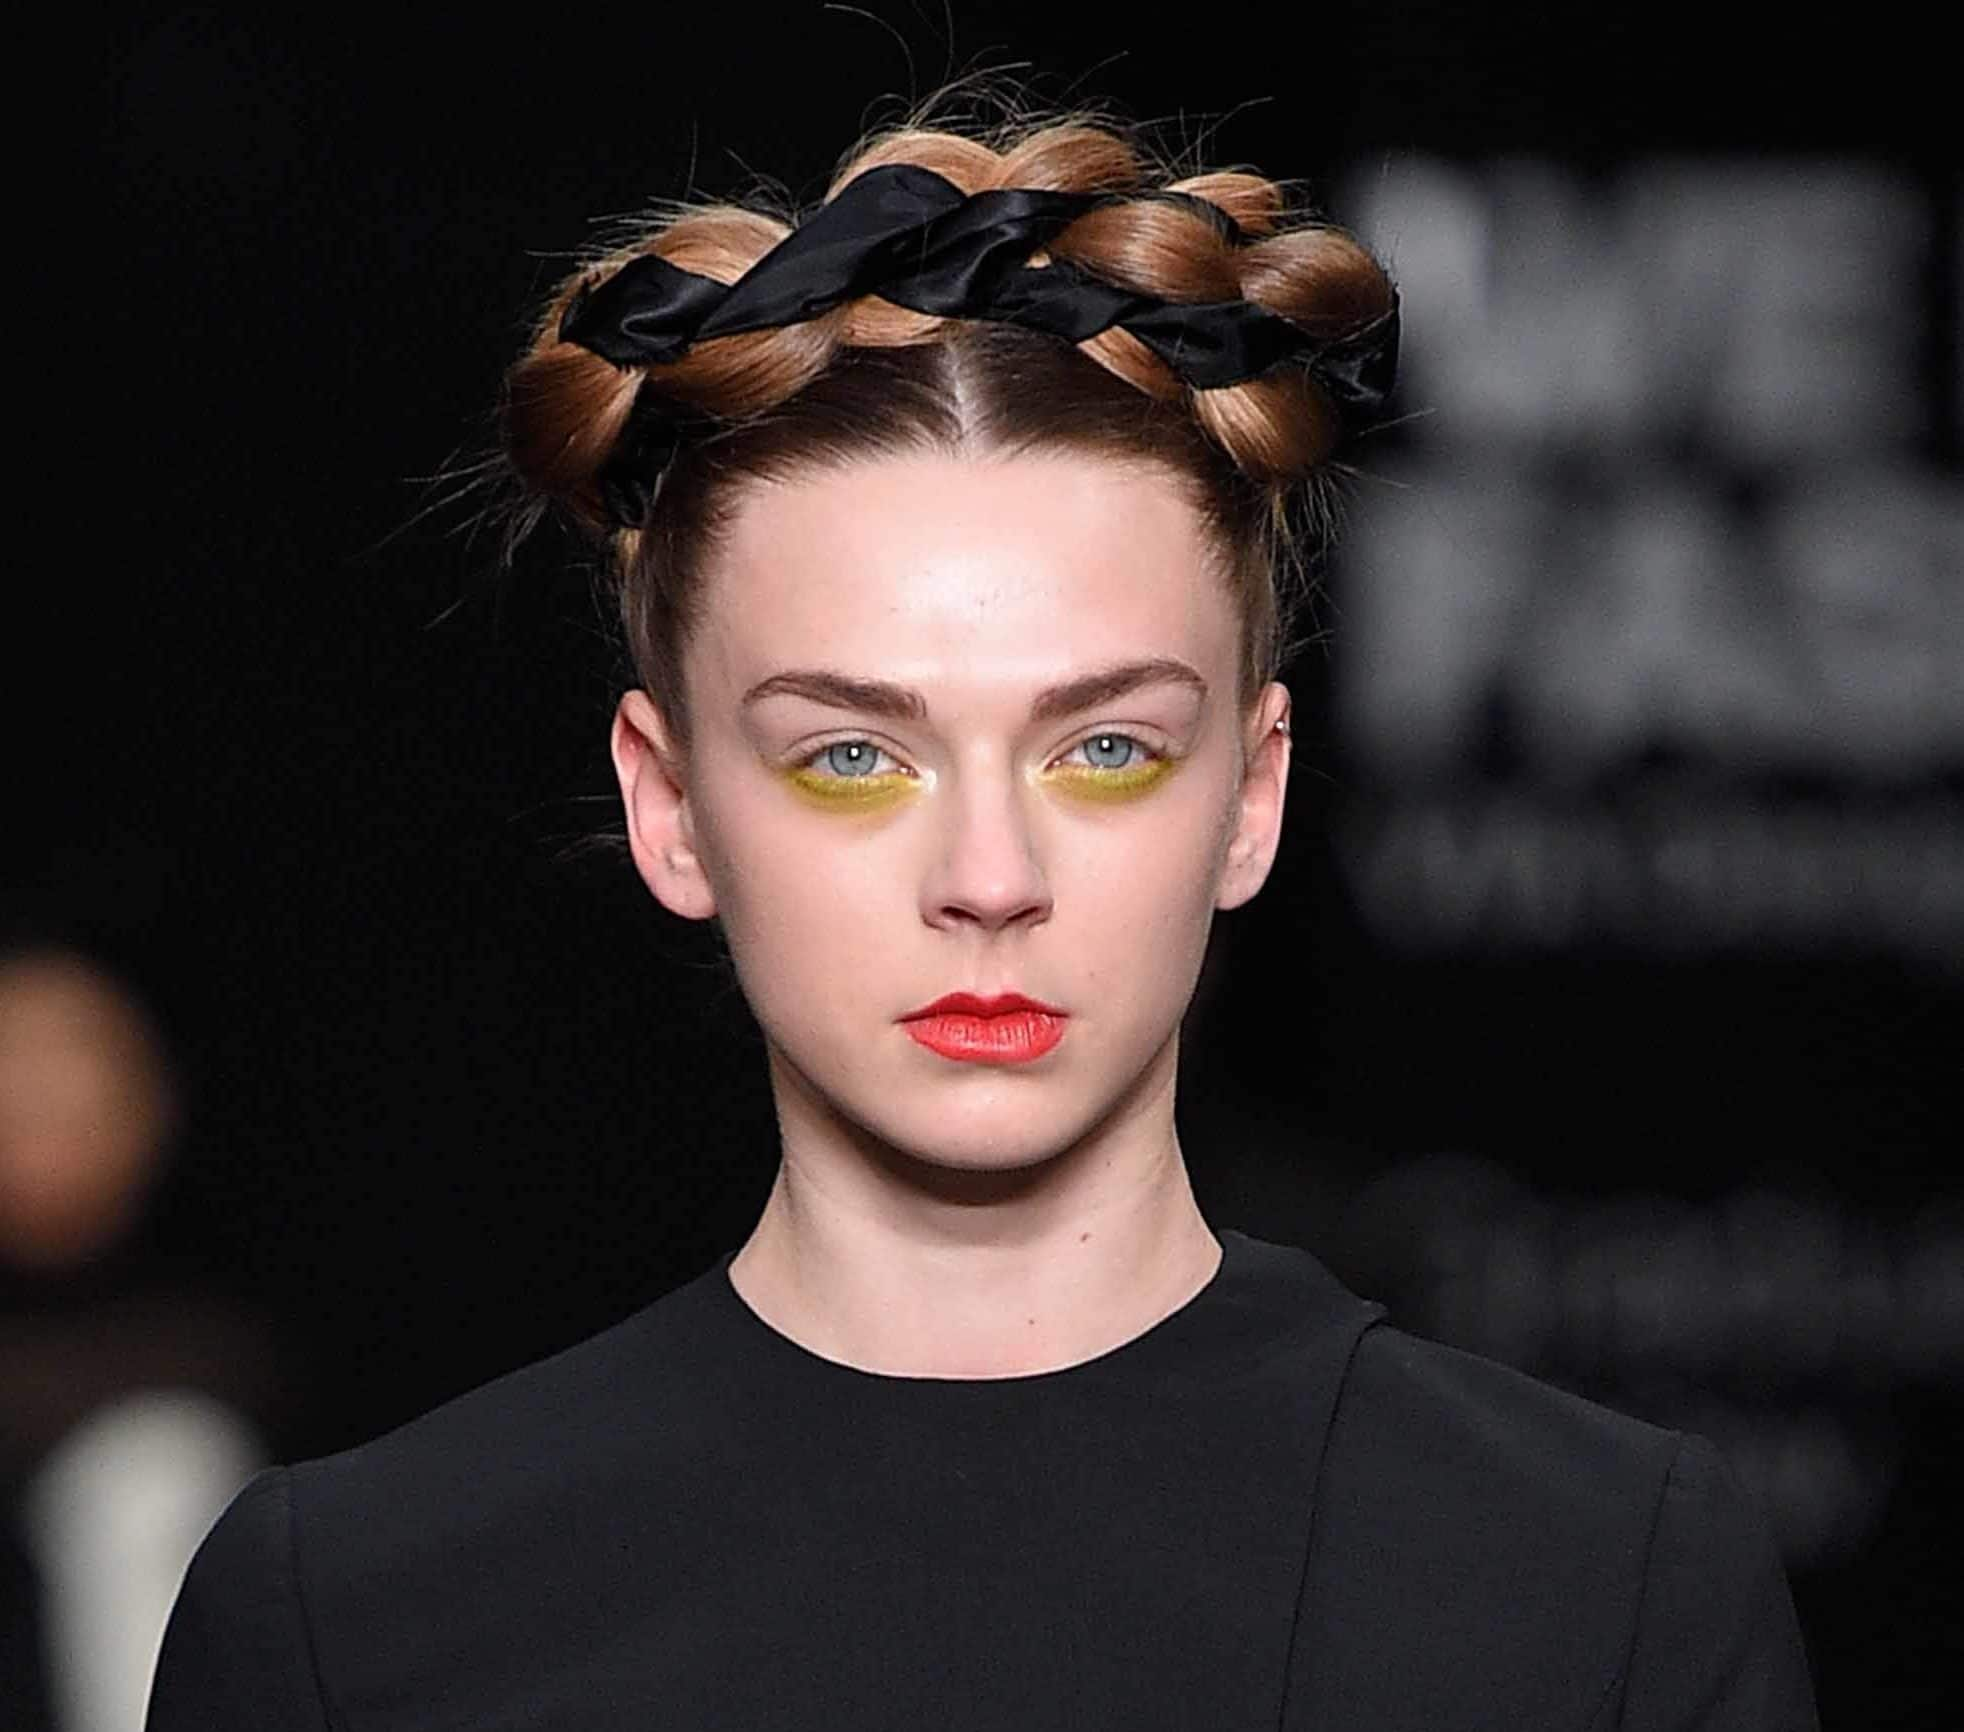 model with brown auburn hair with crown braid woven with ribbon wearing yellow eye makeup, red lips and black dress at aw16 fashion week